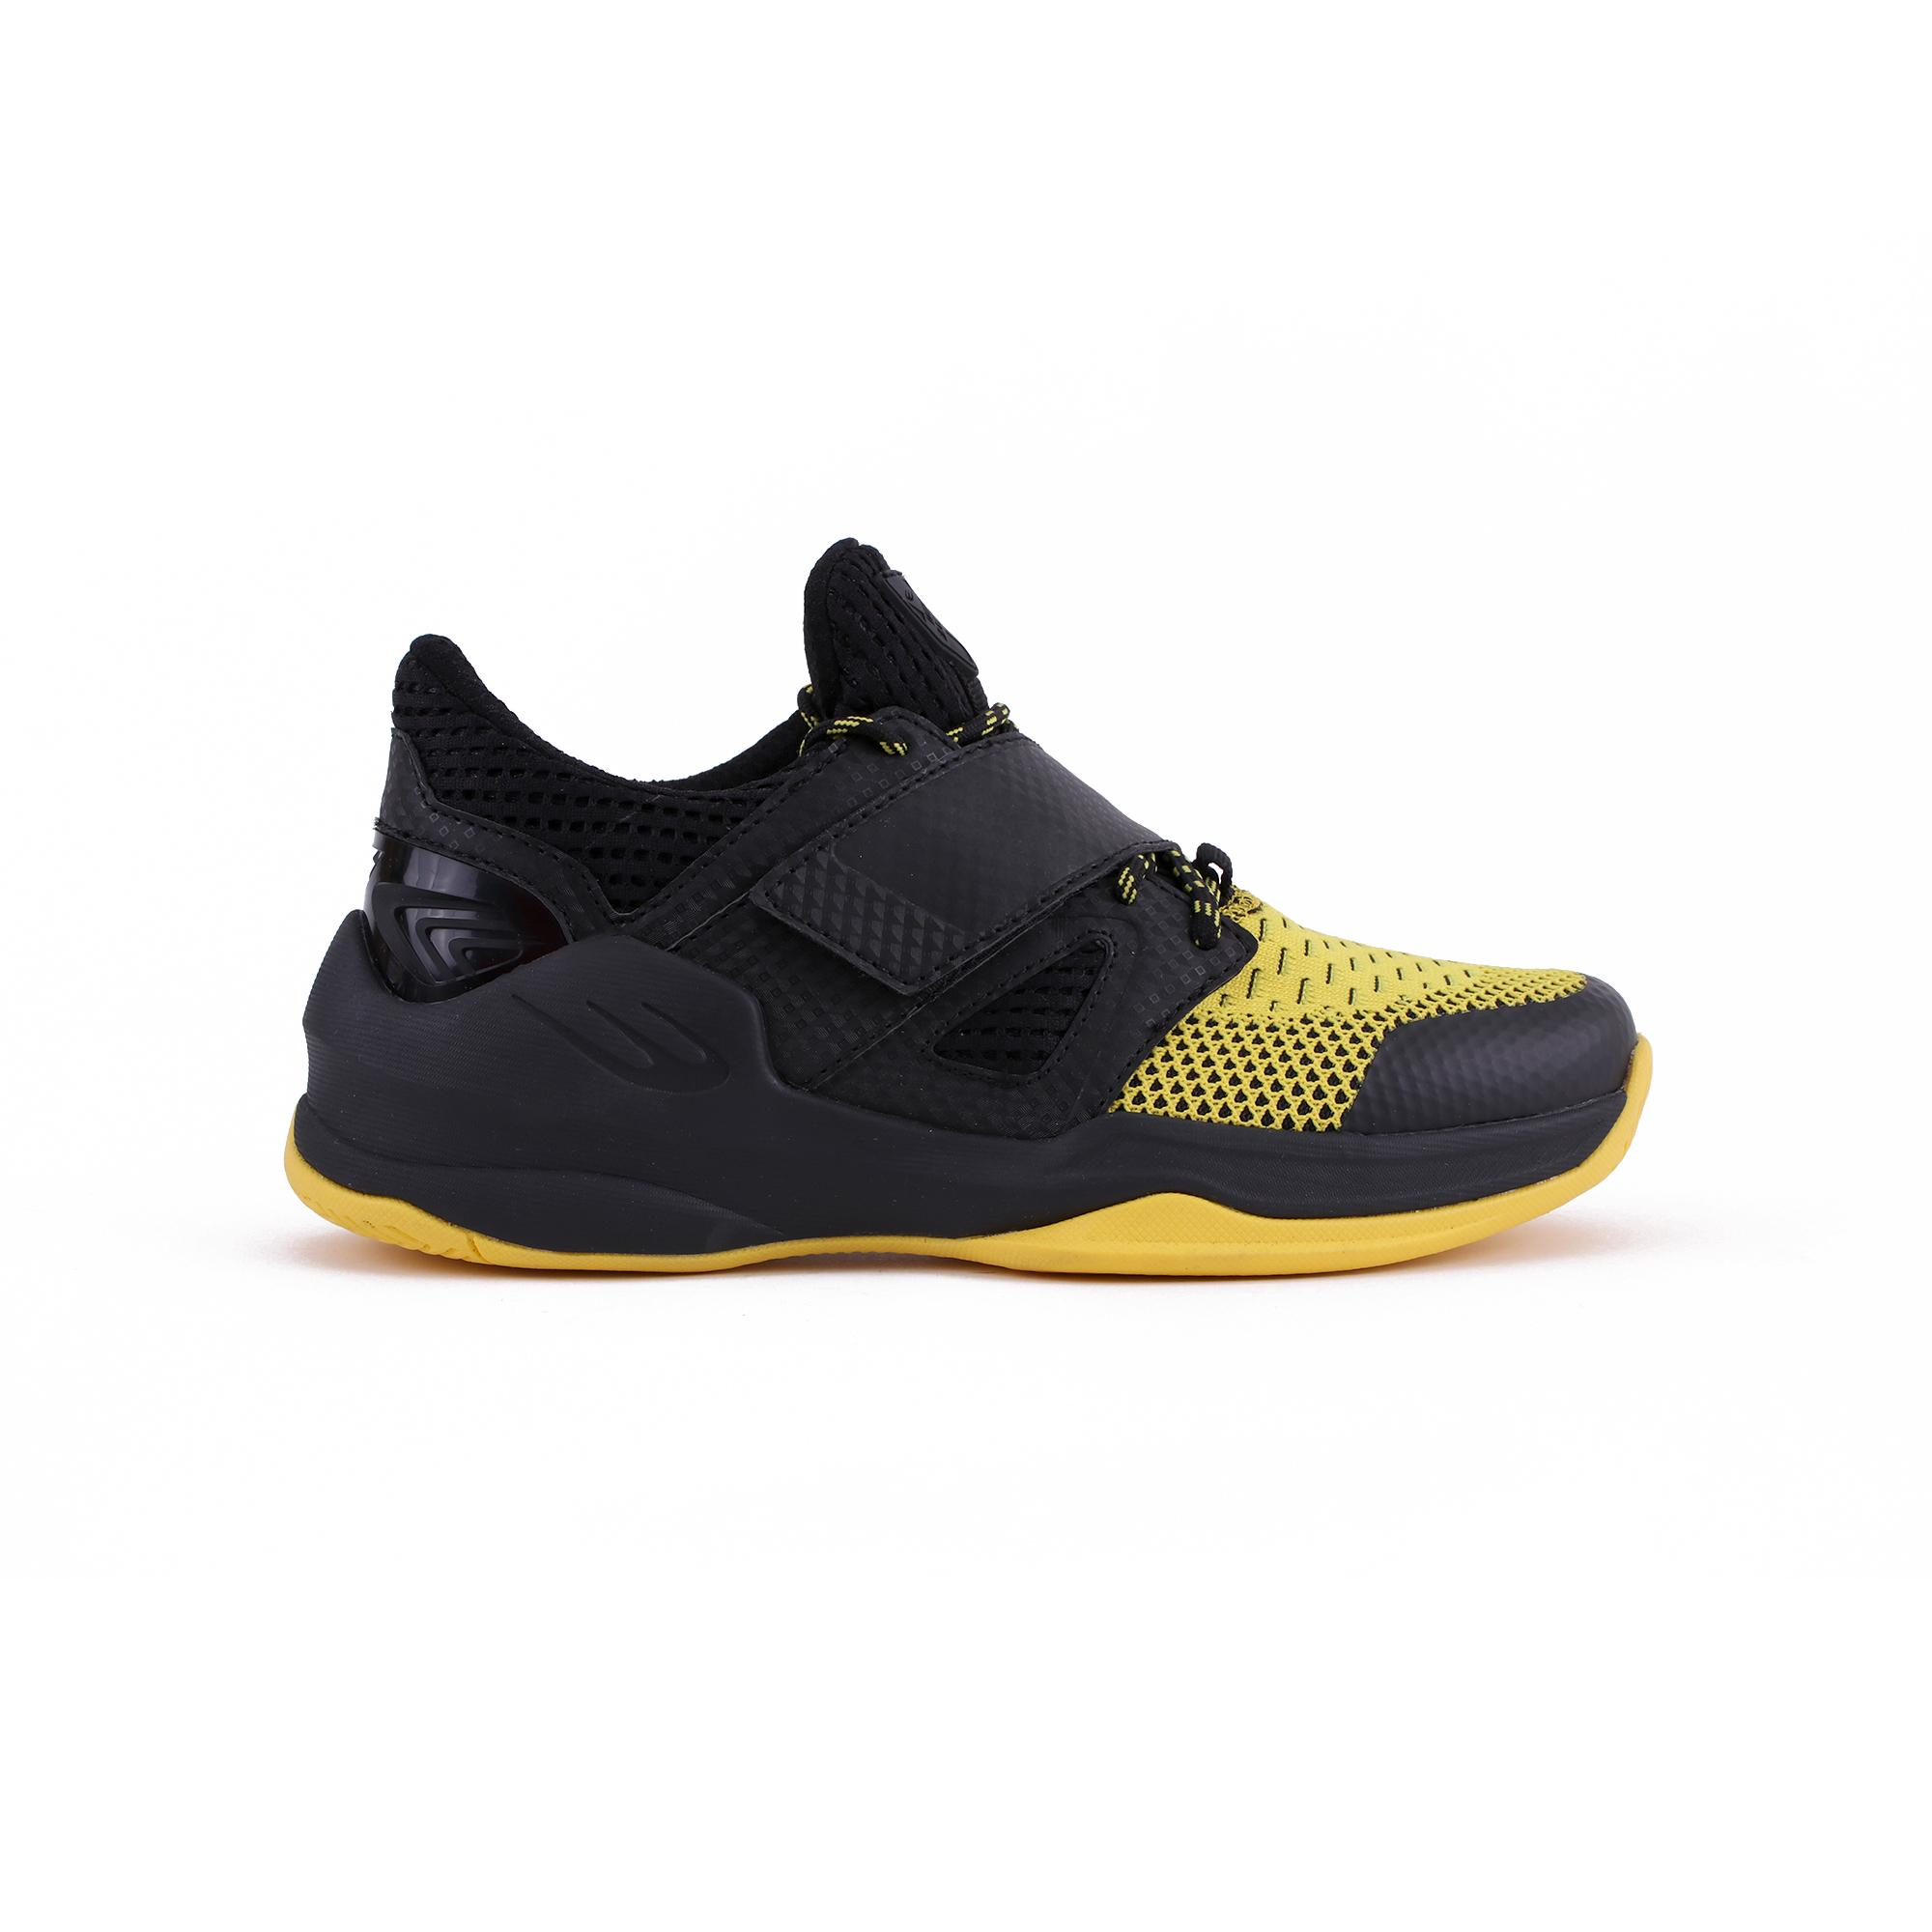 World Balance Philippines World Balance Outdoor Shoes For Boys For